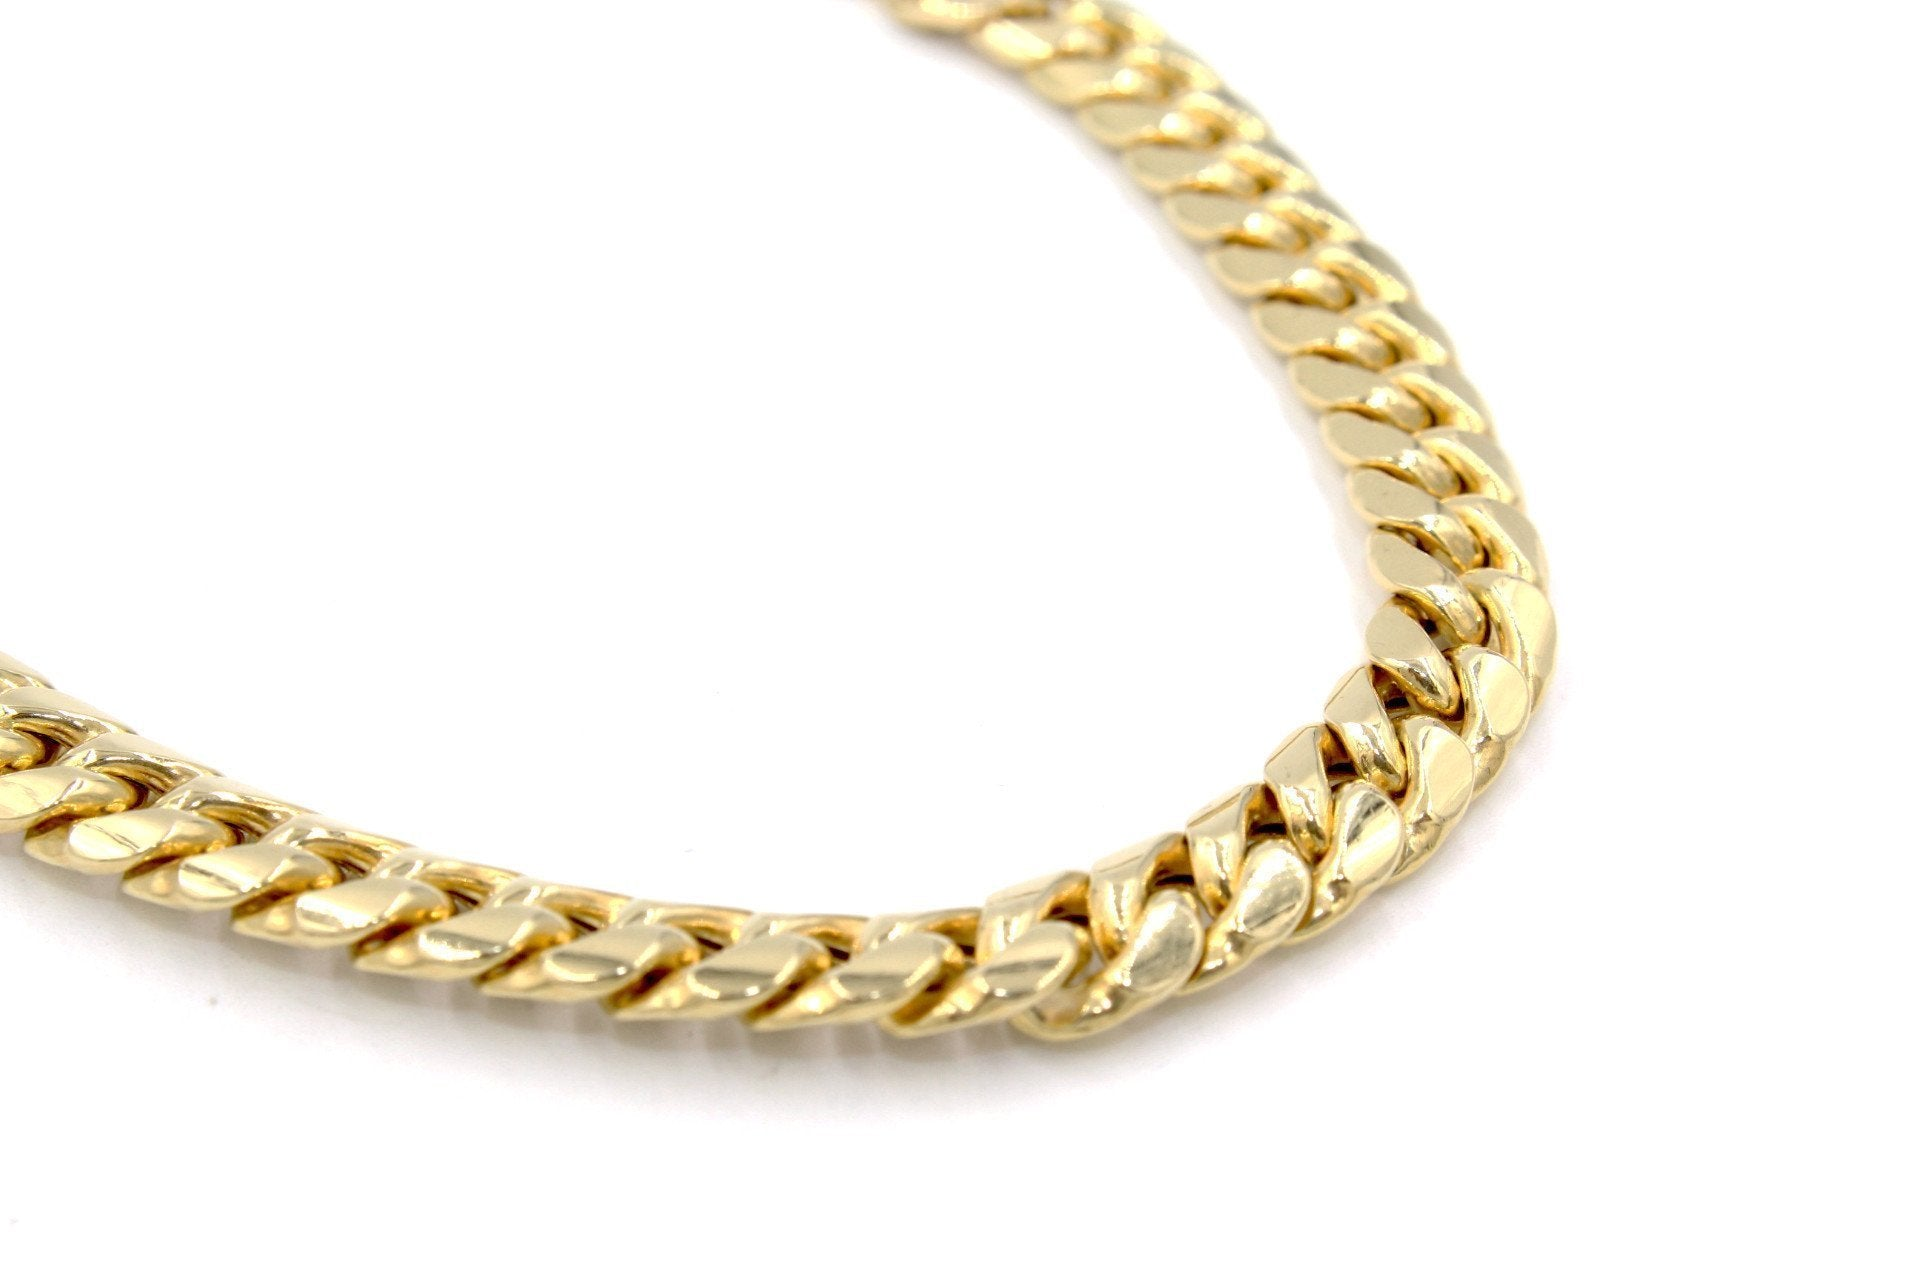 pave products gold inches chain collections necklace byzantine solid